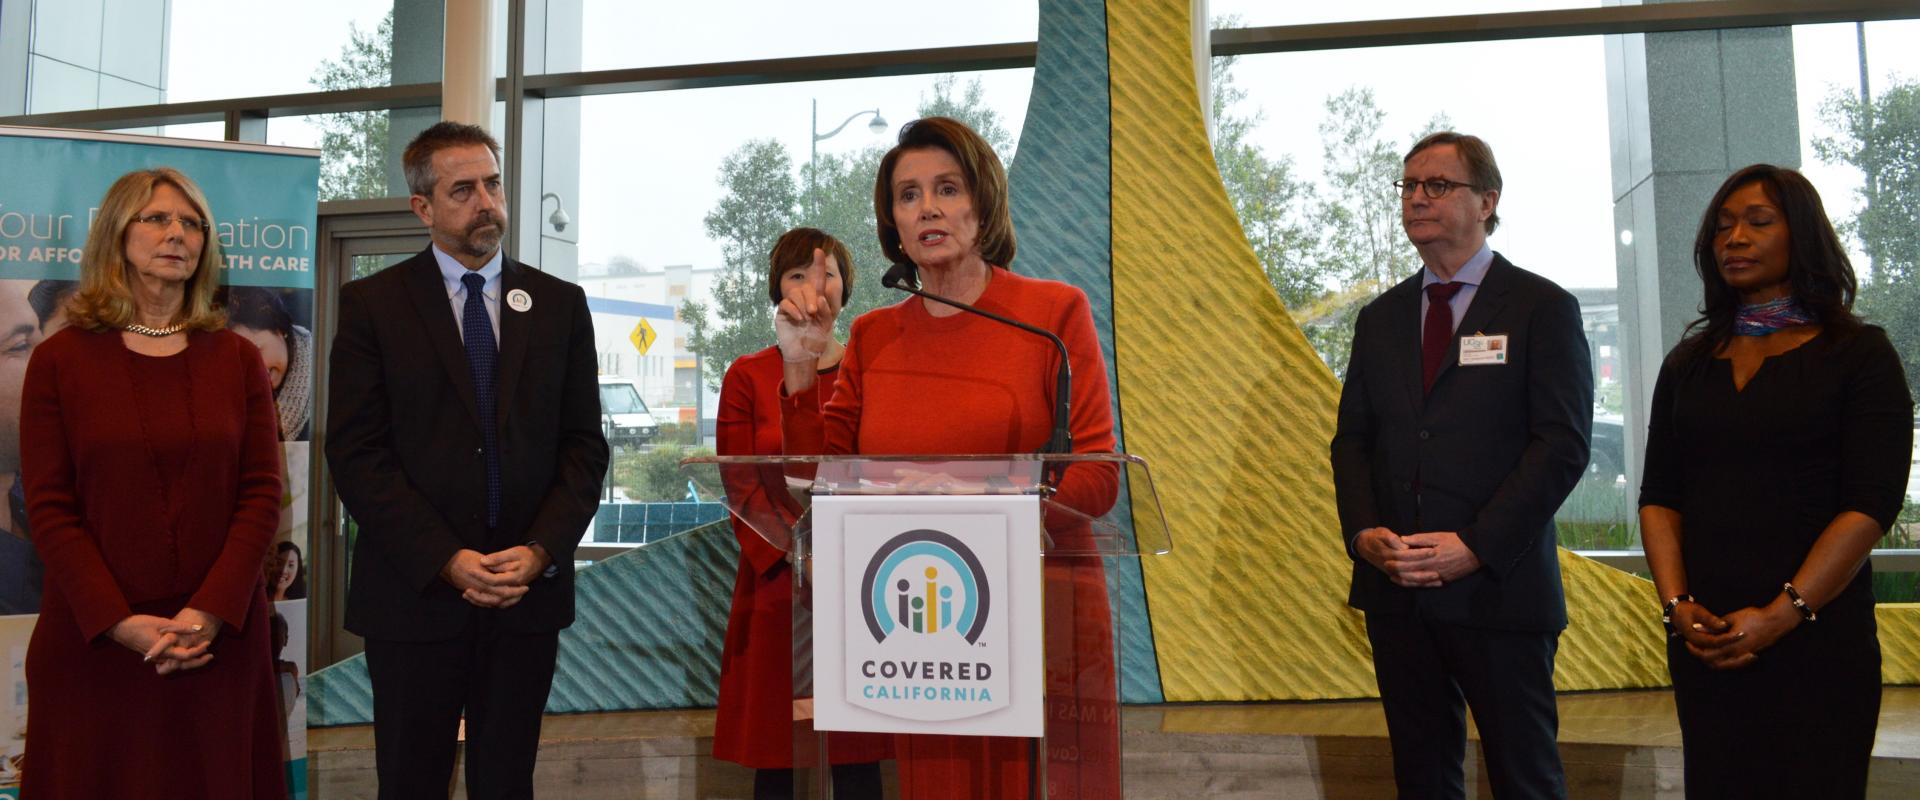 Congresswoman Pelosi joins patients, providers, and health officials at UCSF Mission Bay to unveil data on the Affordable Care Act's success at delivering care to Covered California enrollees in more than 100 of the best hospitals across California.